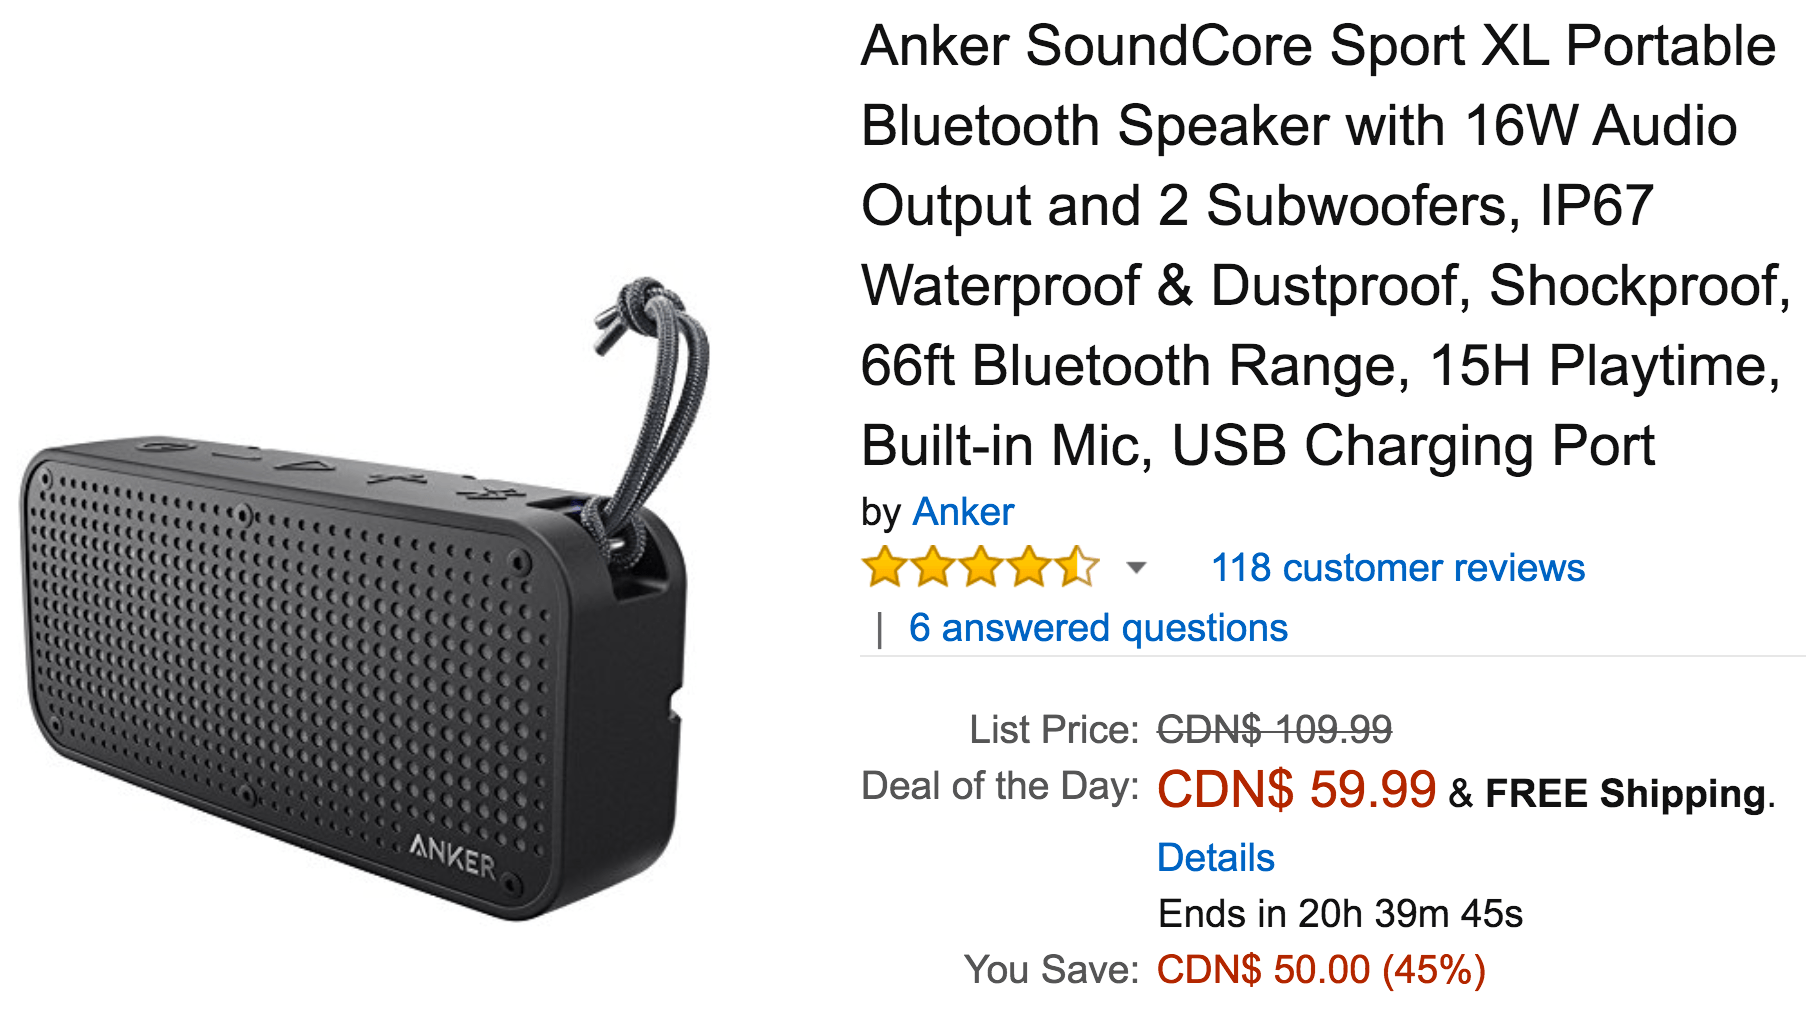 Amazon Canada Deals Of The Day: Save 45% on Anker SoundCore